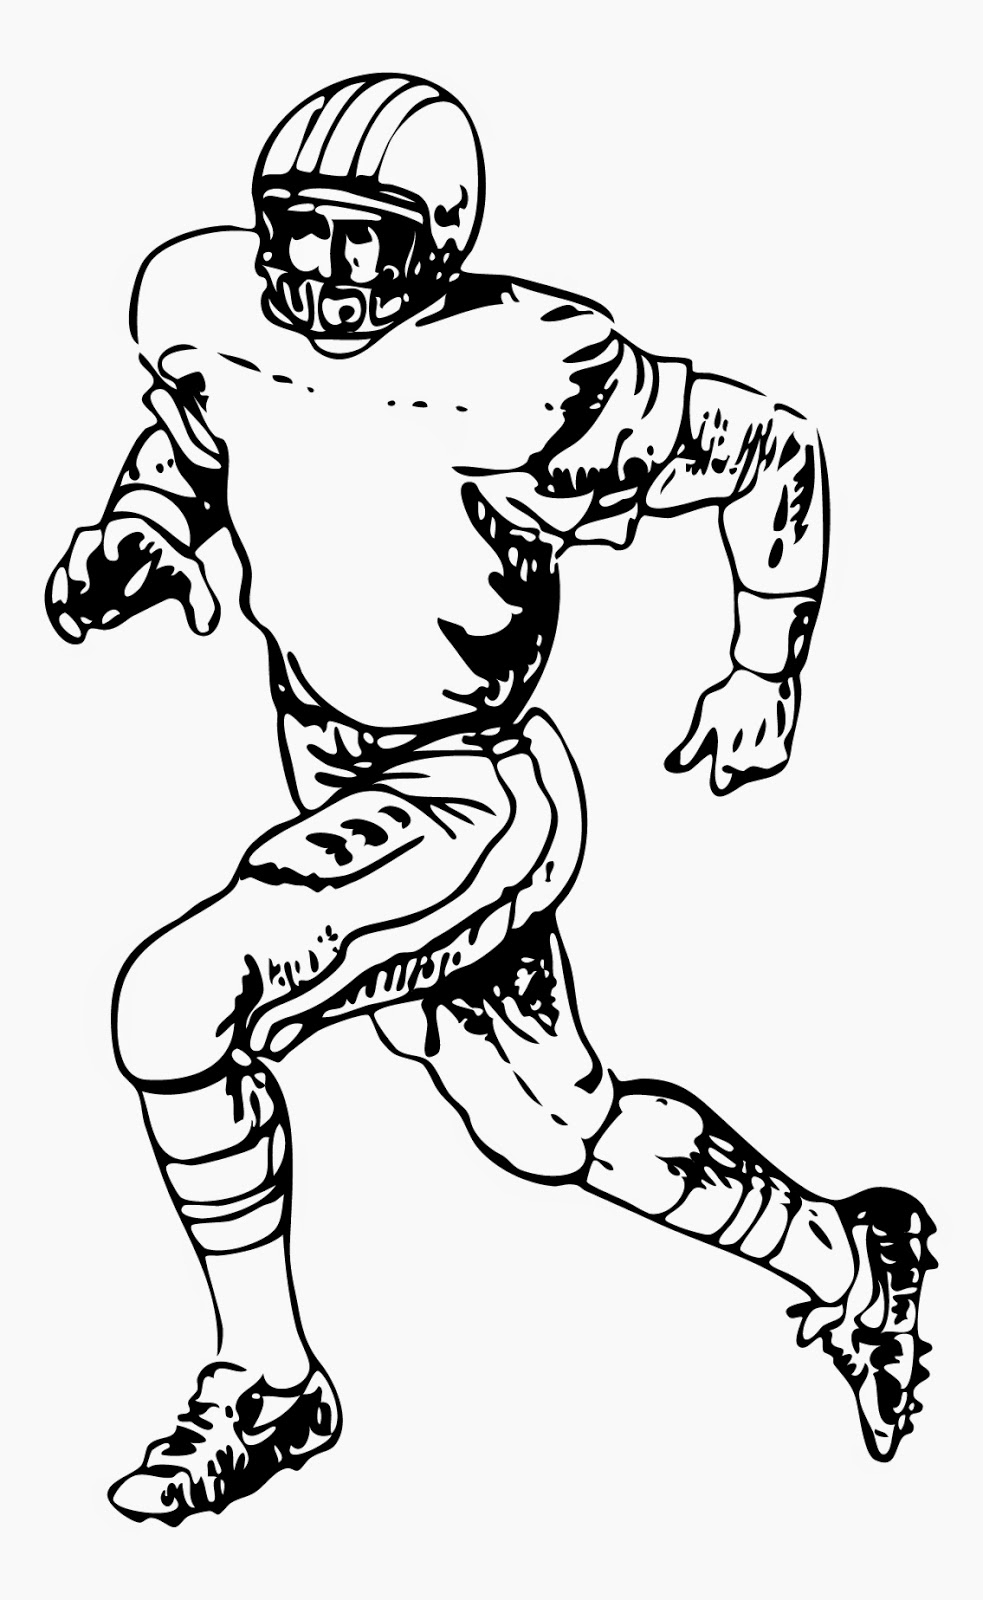 a drawing of a football player football player sketch by nikew on deviantart drawing of player a a football